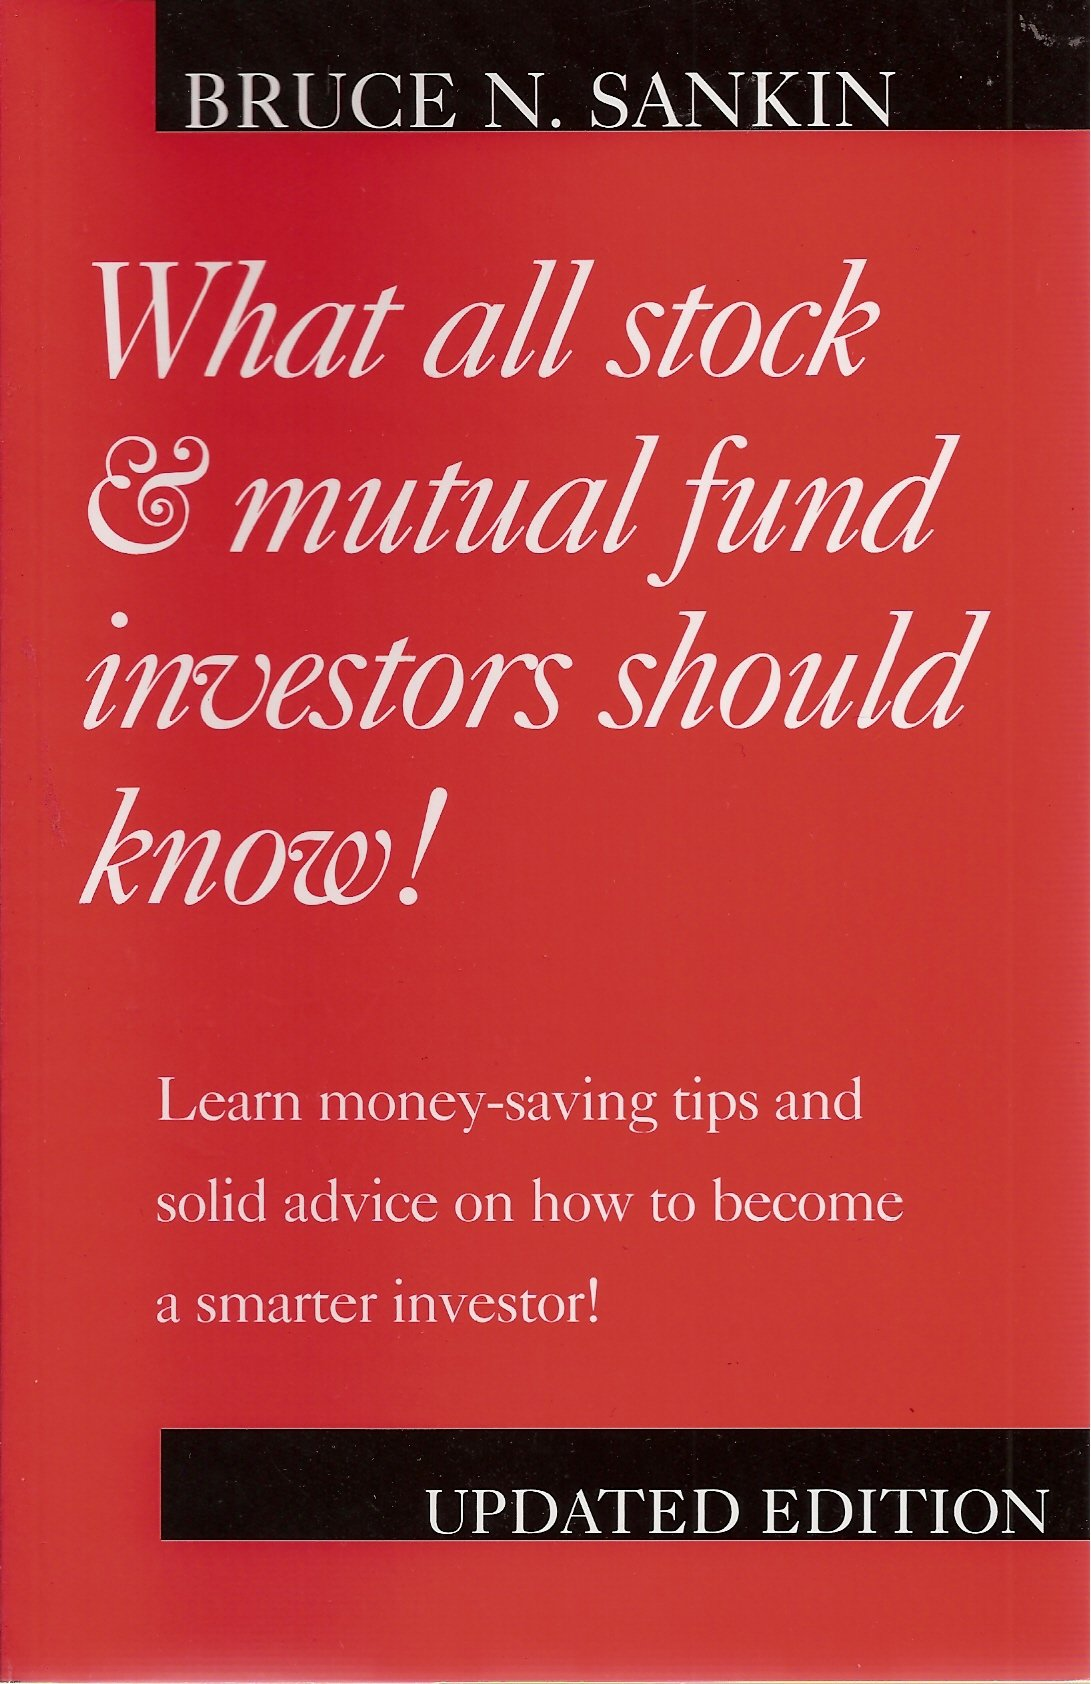 What All Stock & Mutual Fund Investors Should Know! Updated Edition, Learn Money-saving Tips and Solid Advice on How to Become a Smarter Investor! by Bruce Sankin & Associates, Inc.